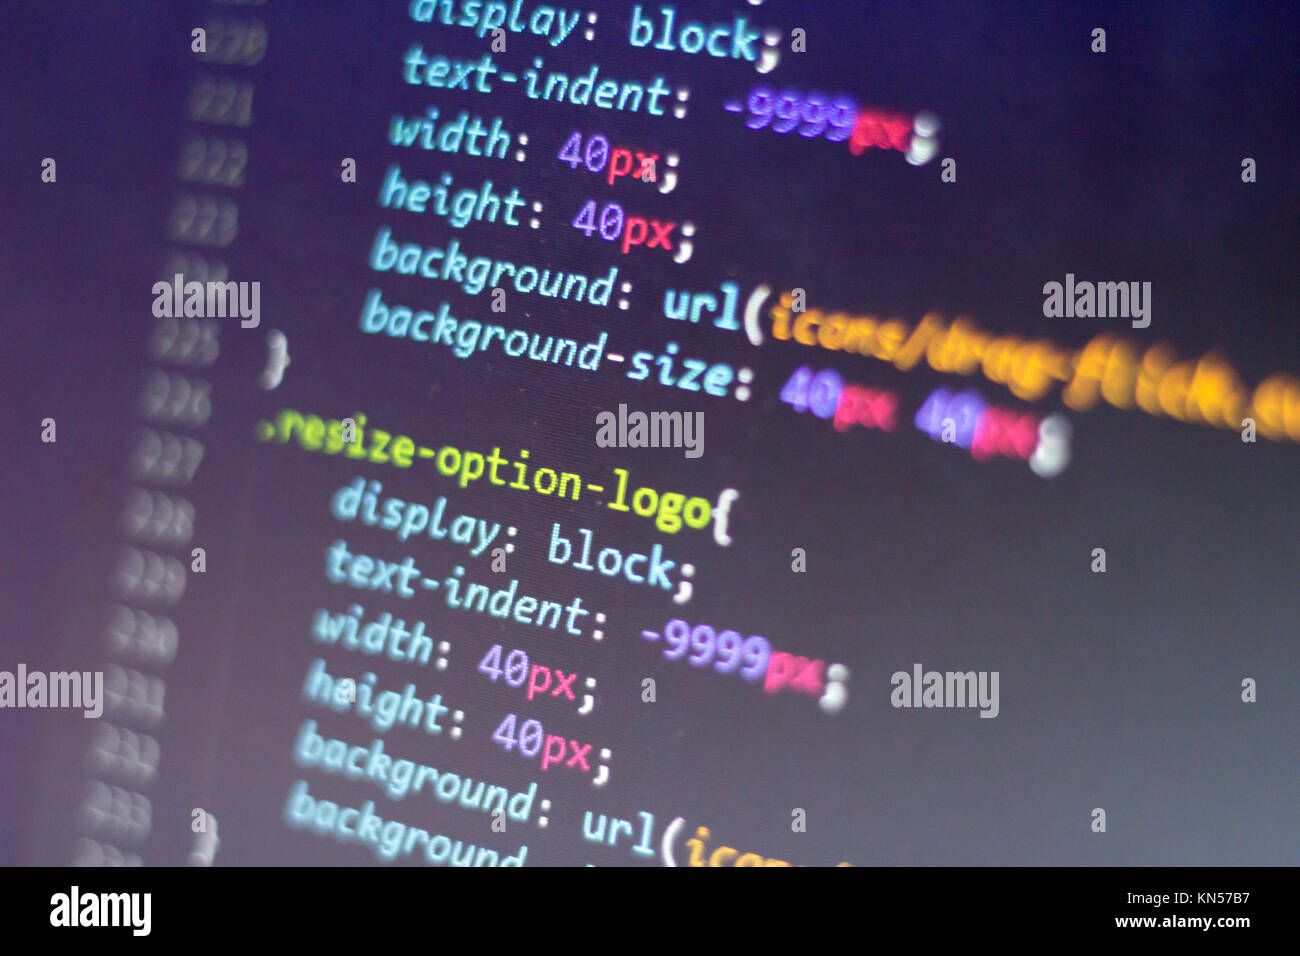 Css Style Code Computer Programming Source Code Abstract Screen Of Stock Photo Alamy